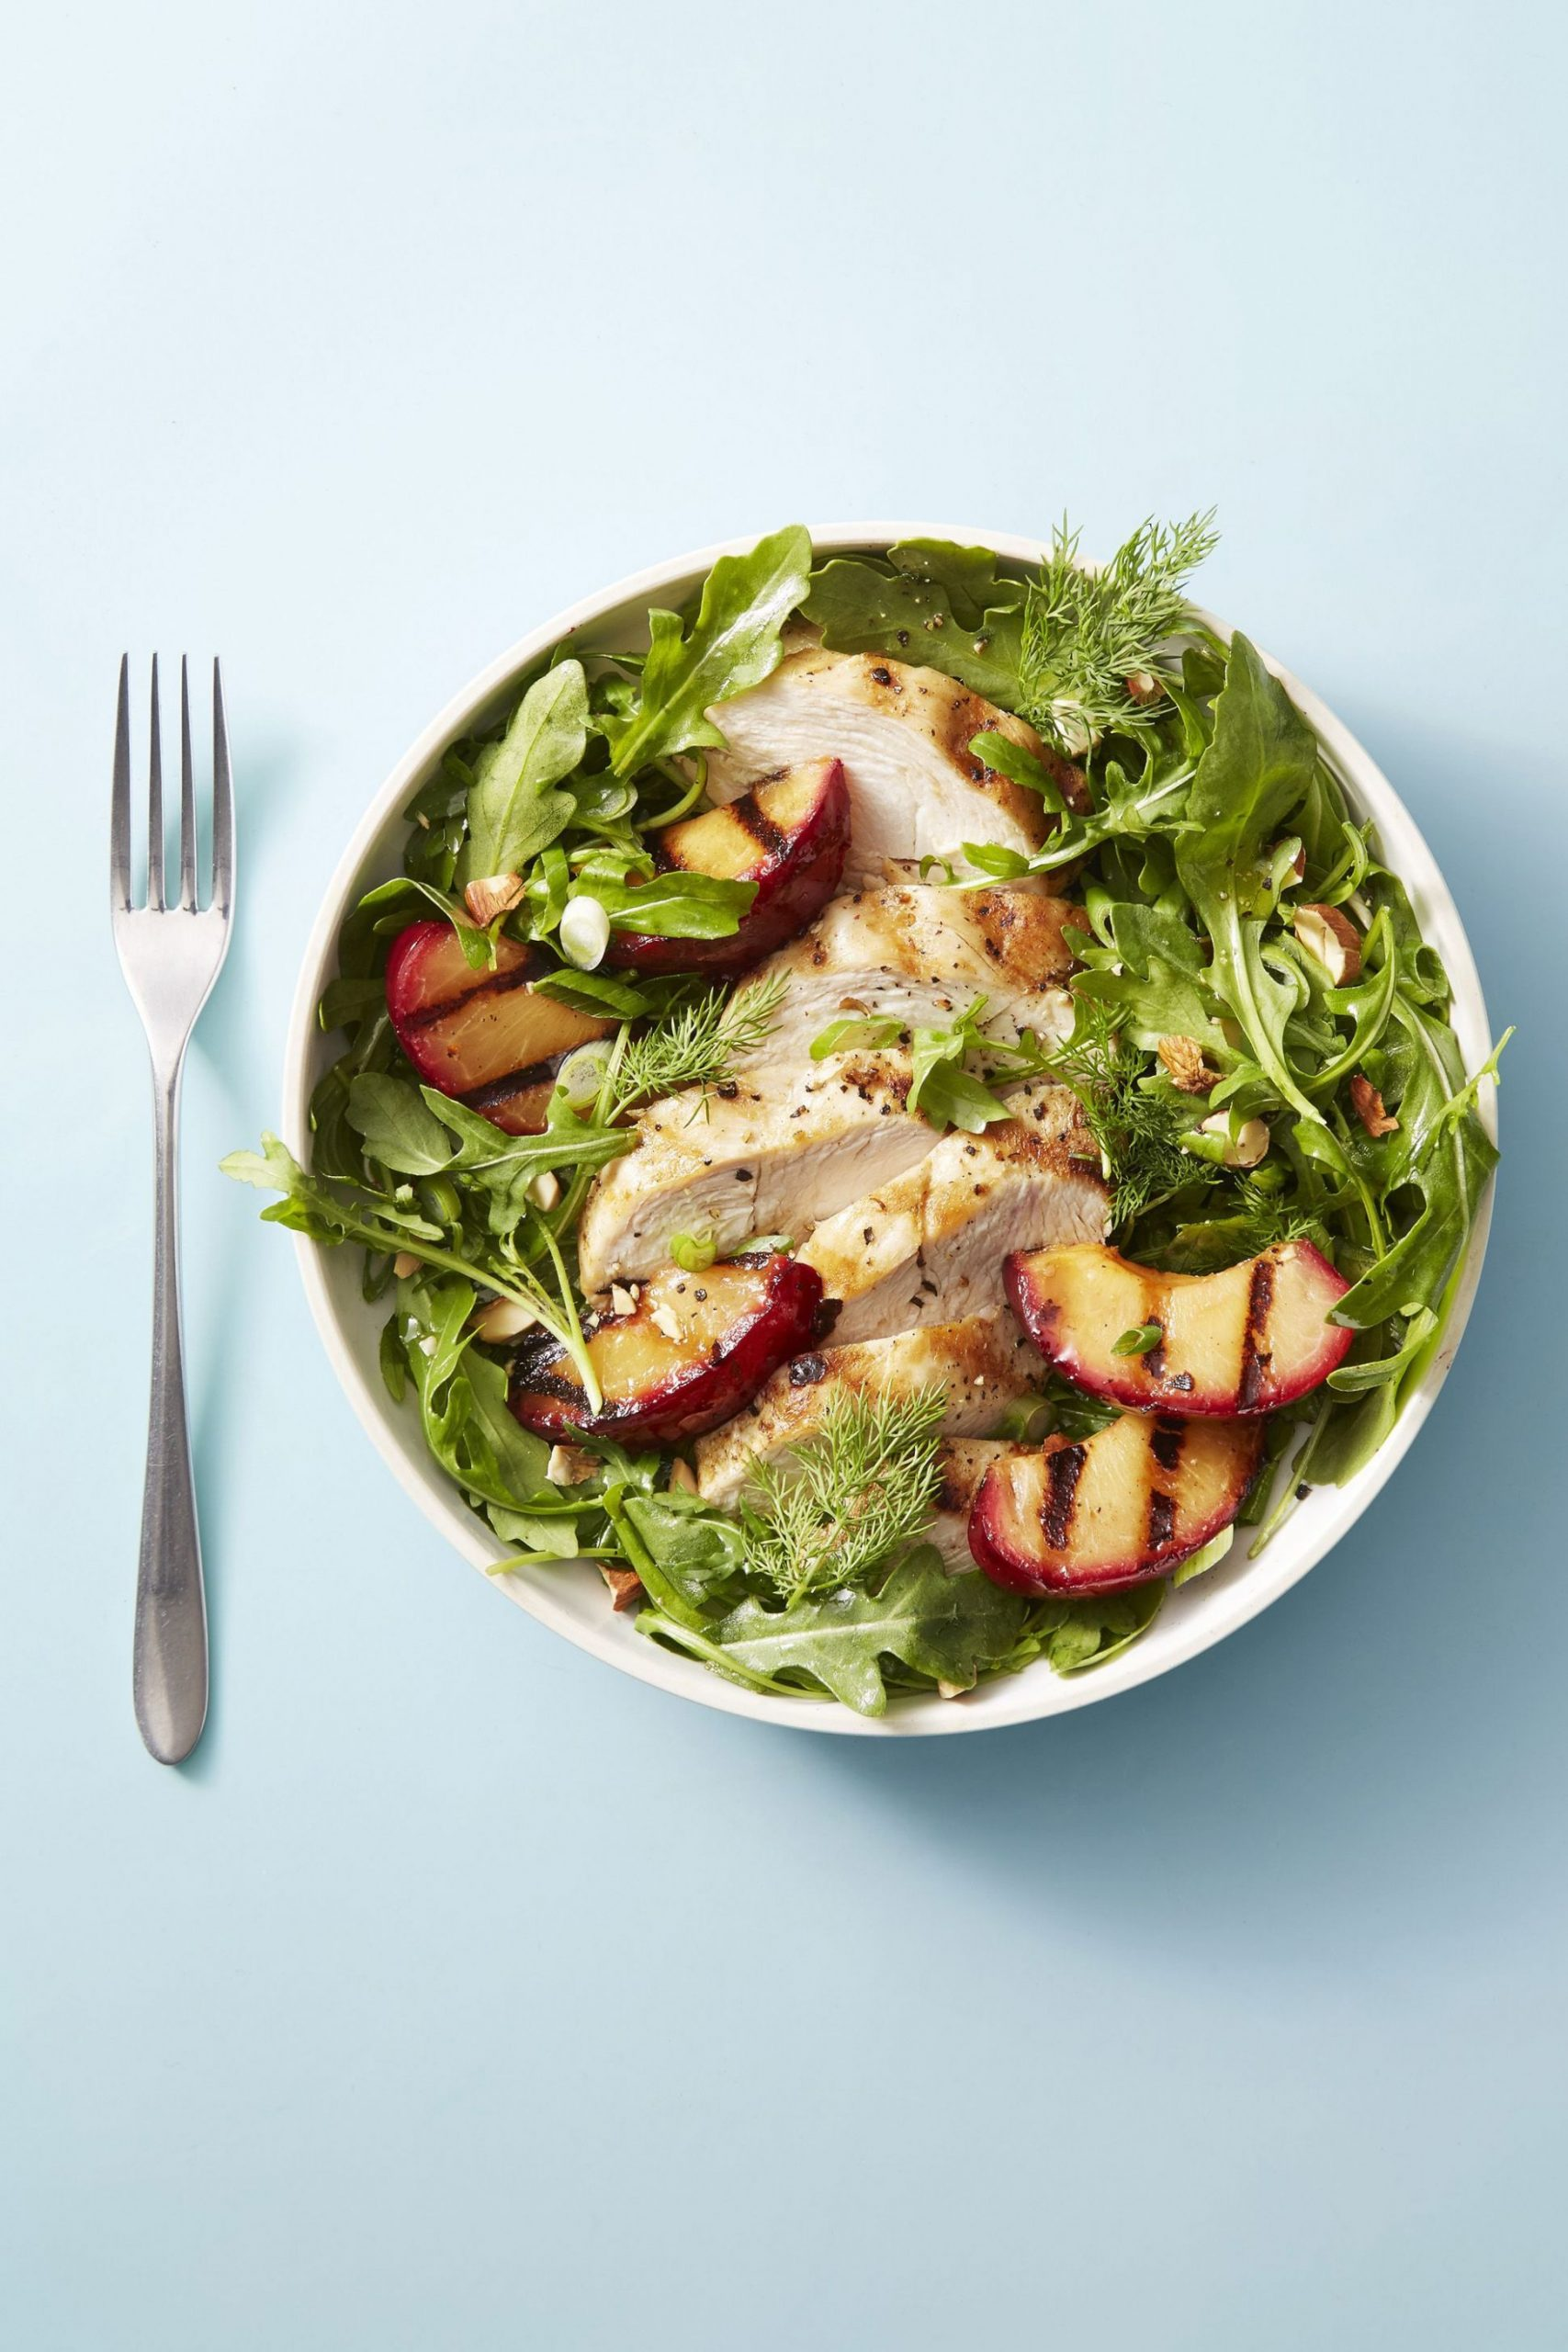 8 Healthy Lunch Ideas - Easy Recipes for Quick Healthy Lunches